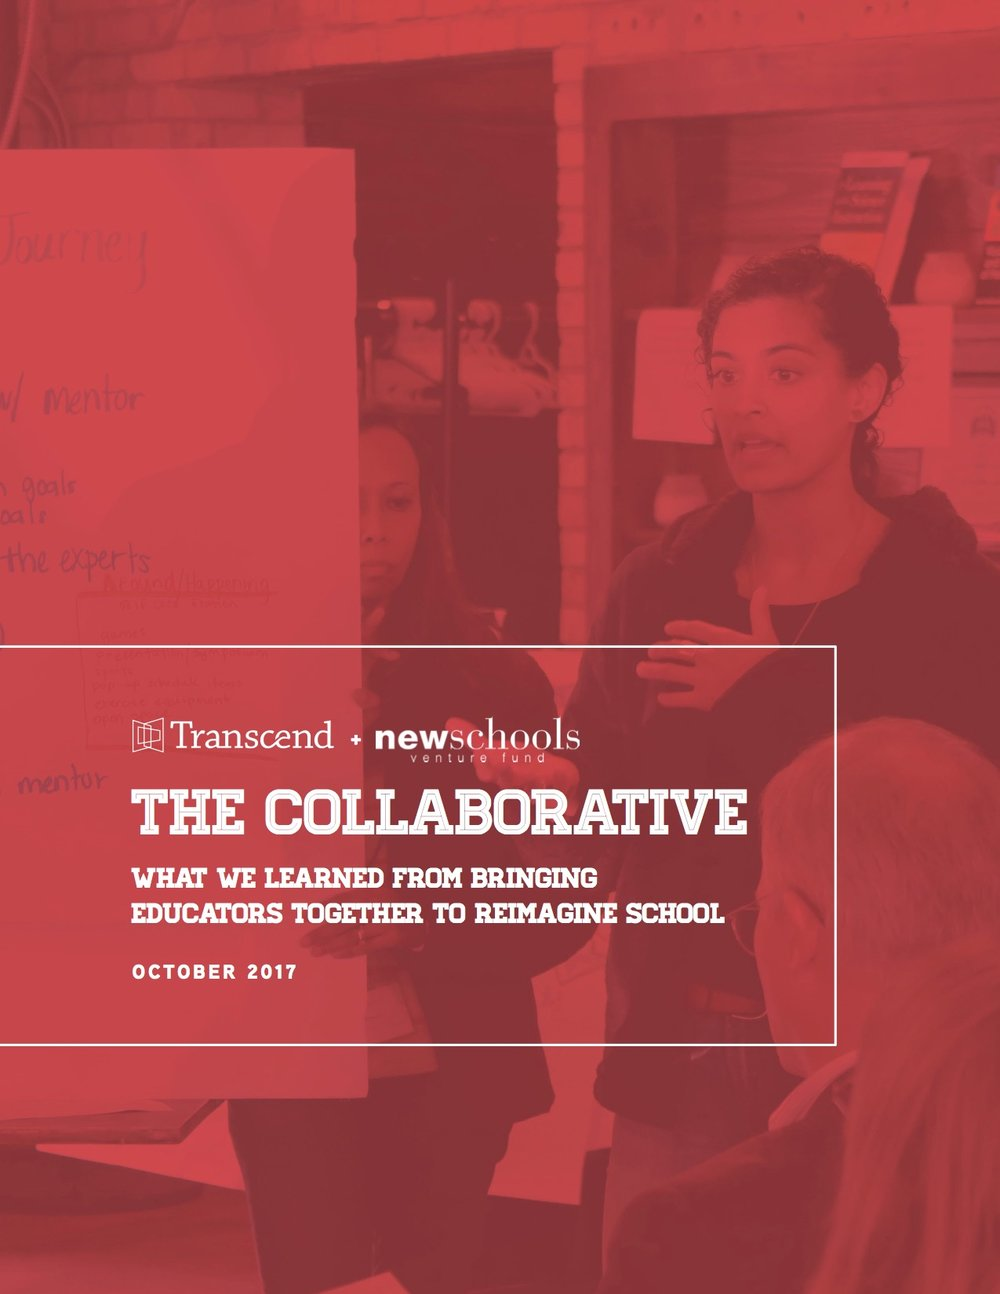 THE COLLABORATIVE: WHAT WE LEARNED FROM BRINGING EDUCATORS TOGETHER TO REIMAGINE SCHOOL   In this report, we share our vision behind Transcend+ NewSchools Collaborative, how we designed and evolved the program, our key results and lessons learned, and the stories of four participating teams (District of Columbia Public Schools, Gestalt Community Schools, Hiawatha Academies, and Spring Branch Independent School District).